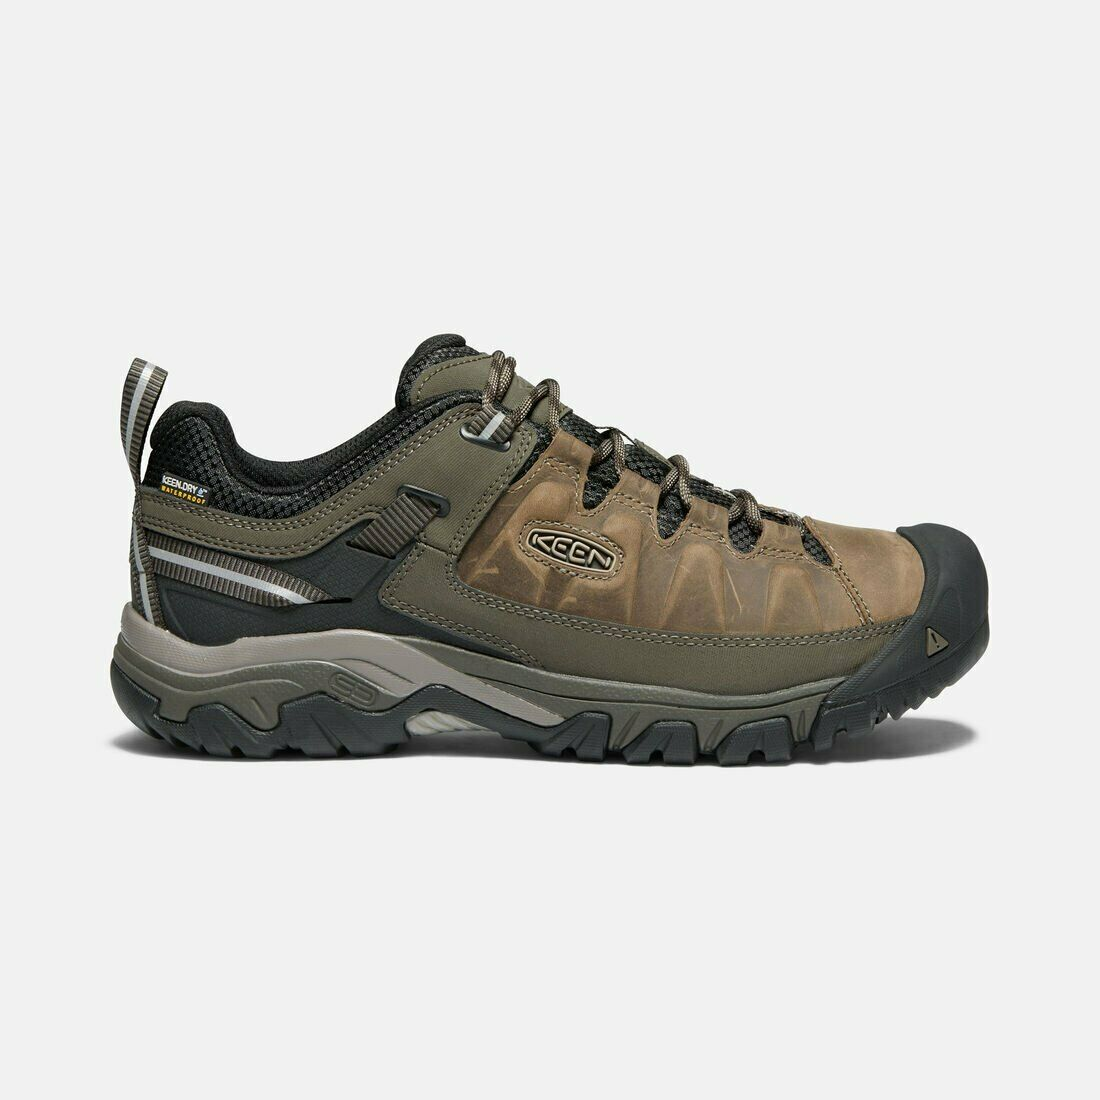 KEEN Shoes Men's Targhee III Leather Waterproof Shoes Width